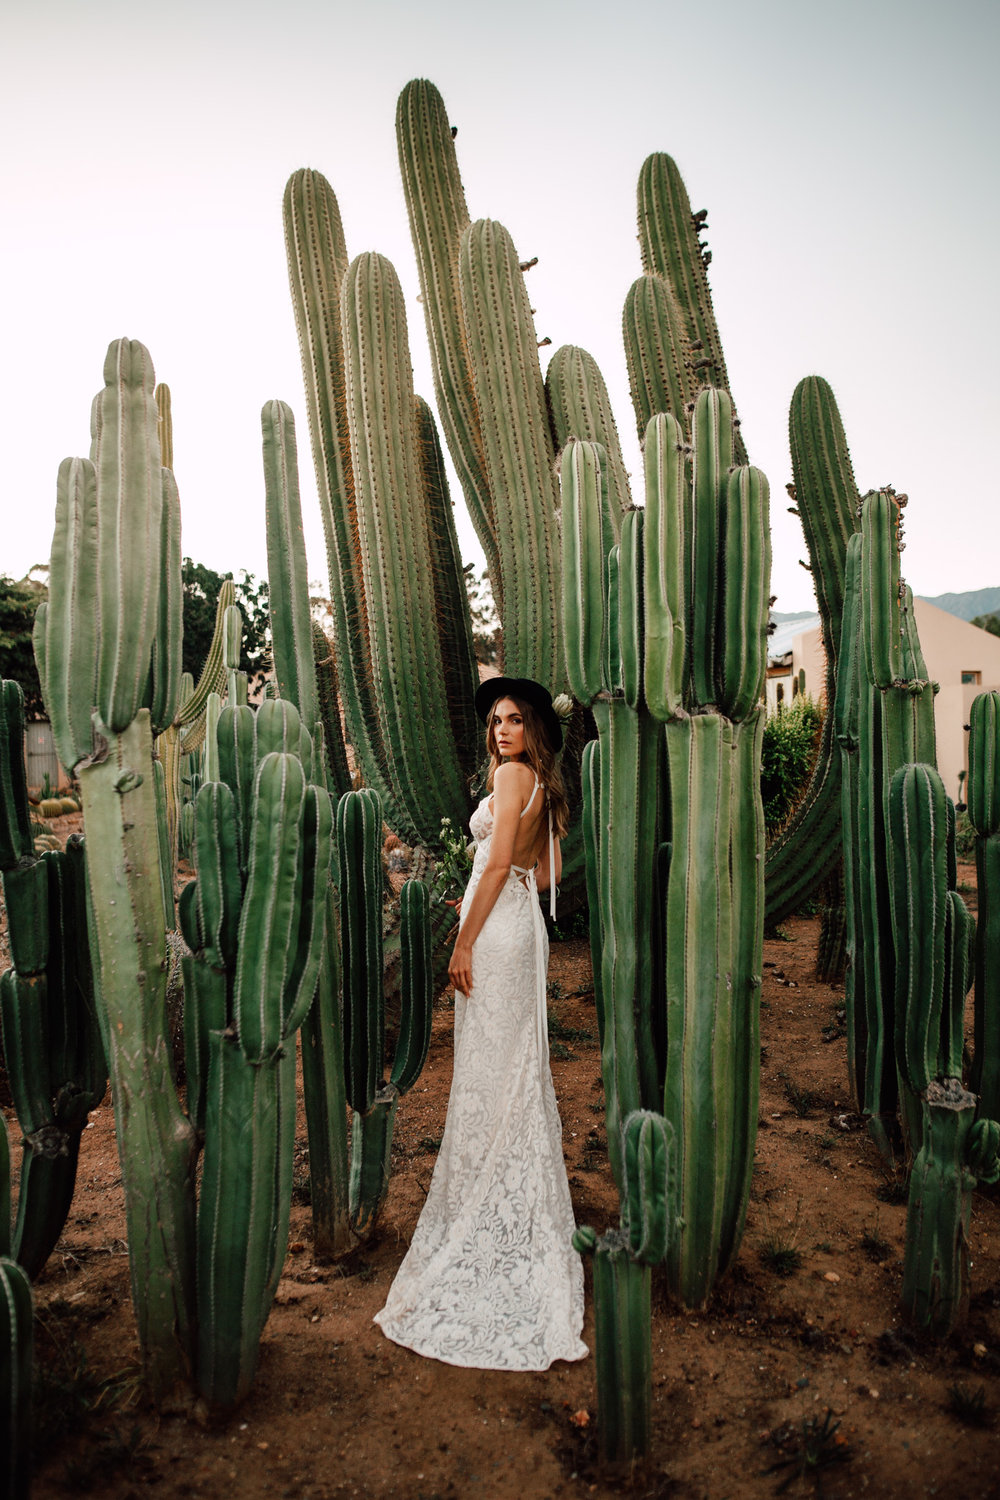 Cape-Town-Pia-Anna-Christian-Wedding-Photography-South-Africa-Bride-Cactus-32.jpg